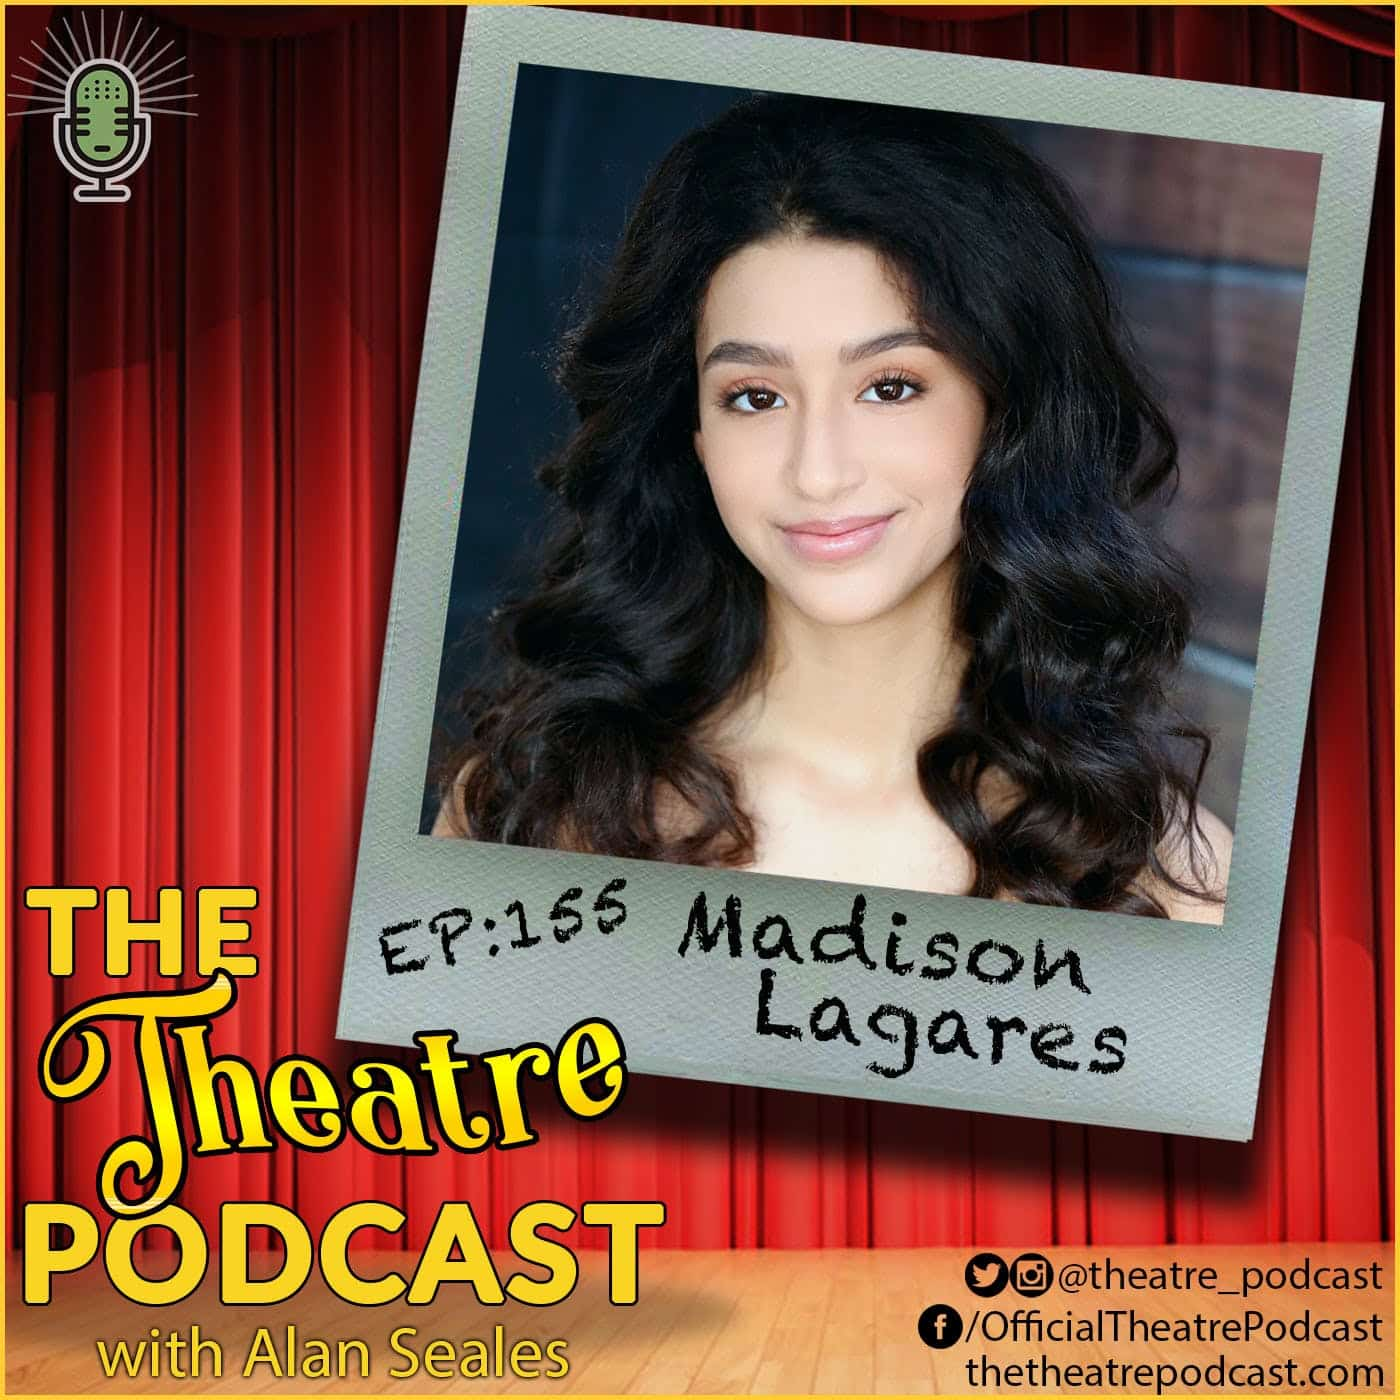 Ep155 - Madison Lagares: This 13 Year Old is Going Places!